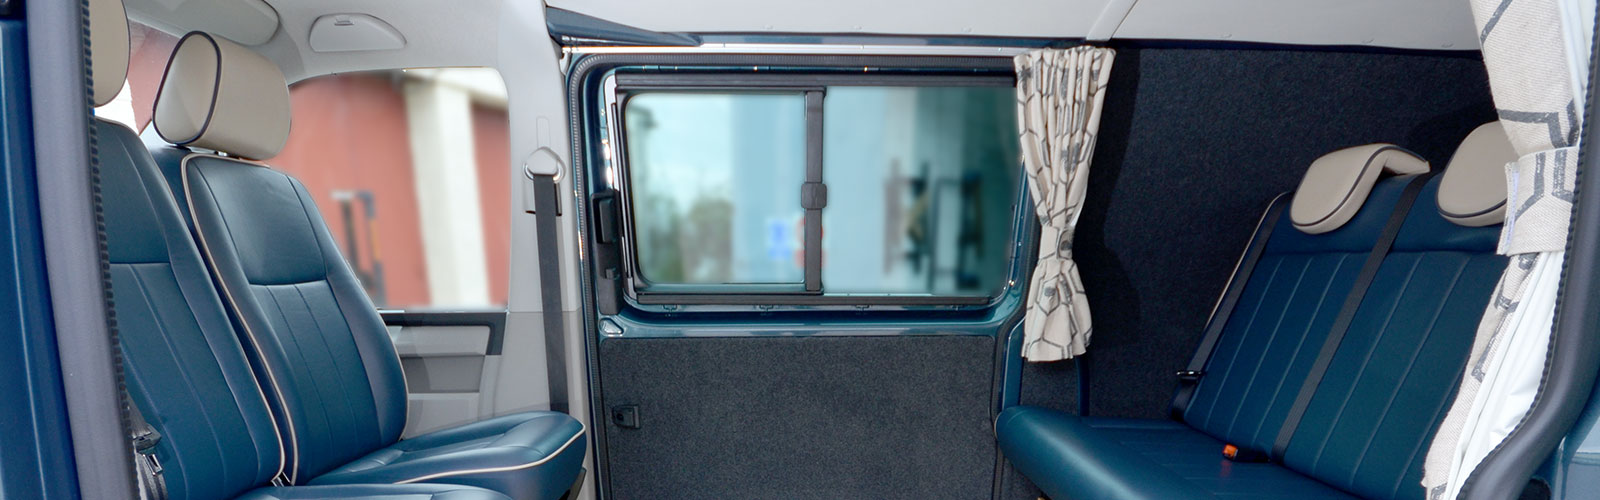 Blue leather rock and roll seat with cream headrests with blue piping and tied back curtains